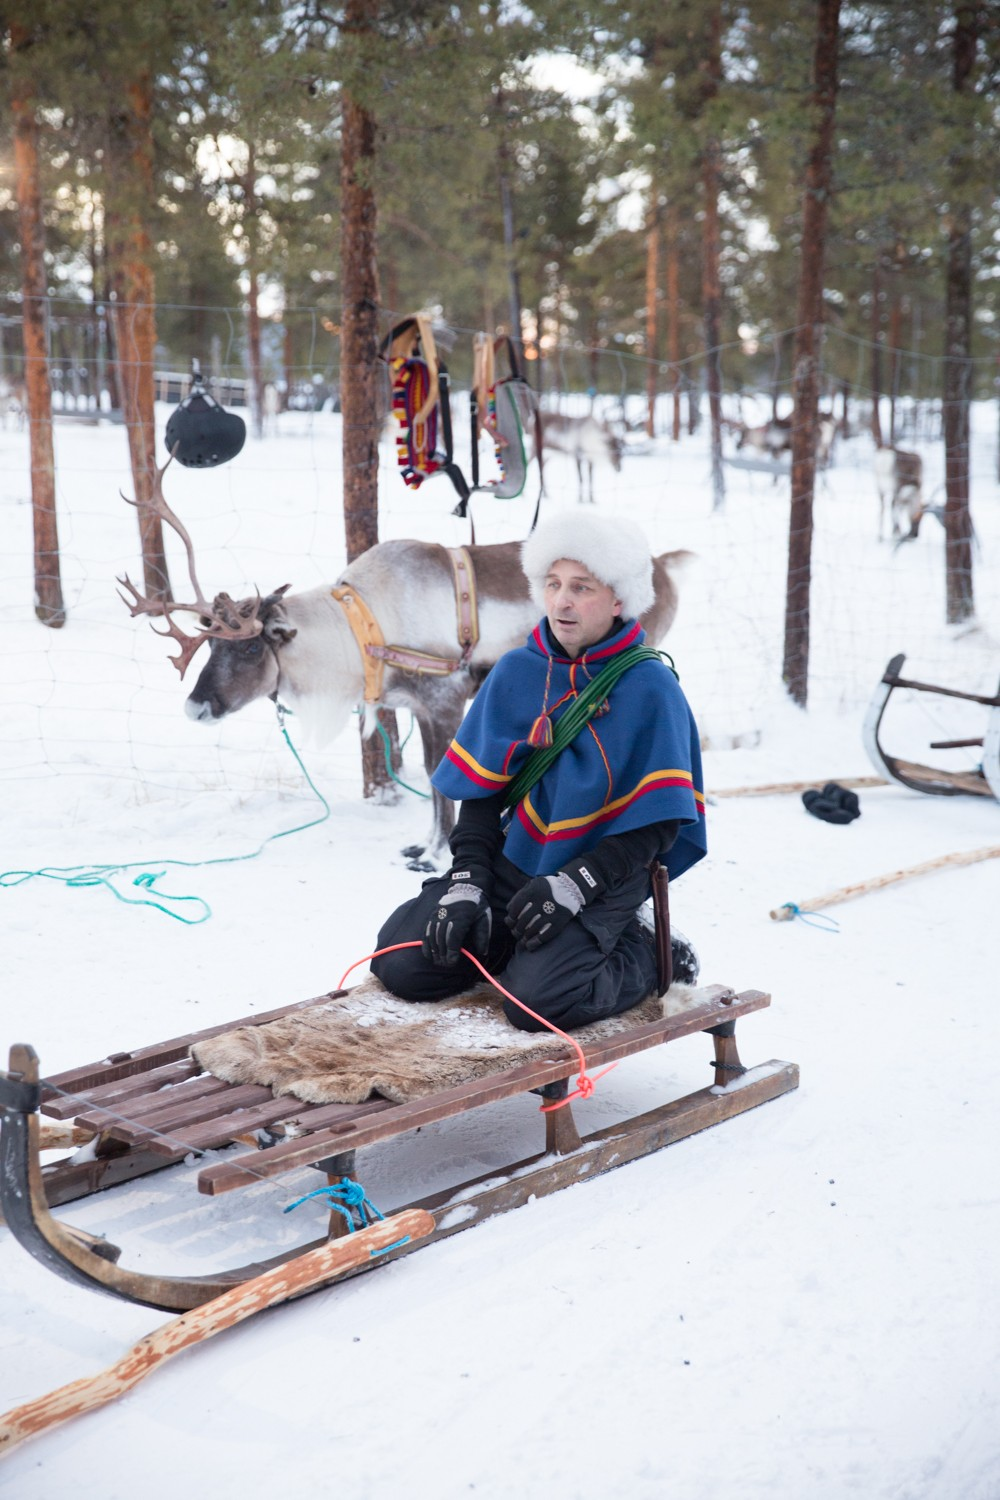 Reindeer and Saunas in Sweden -12